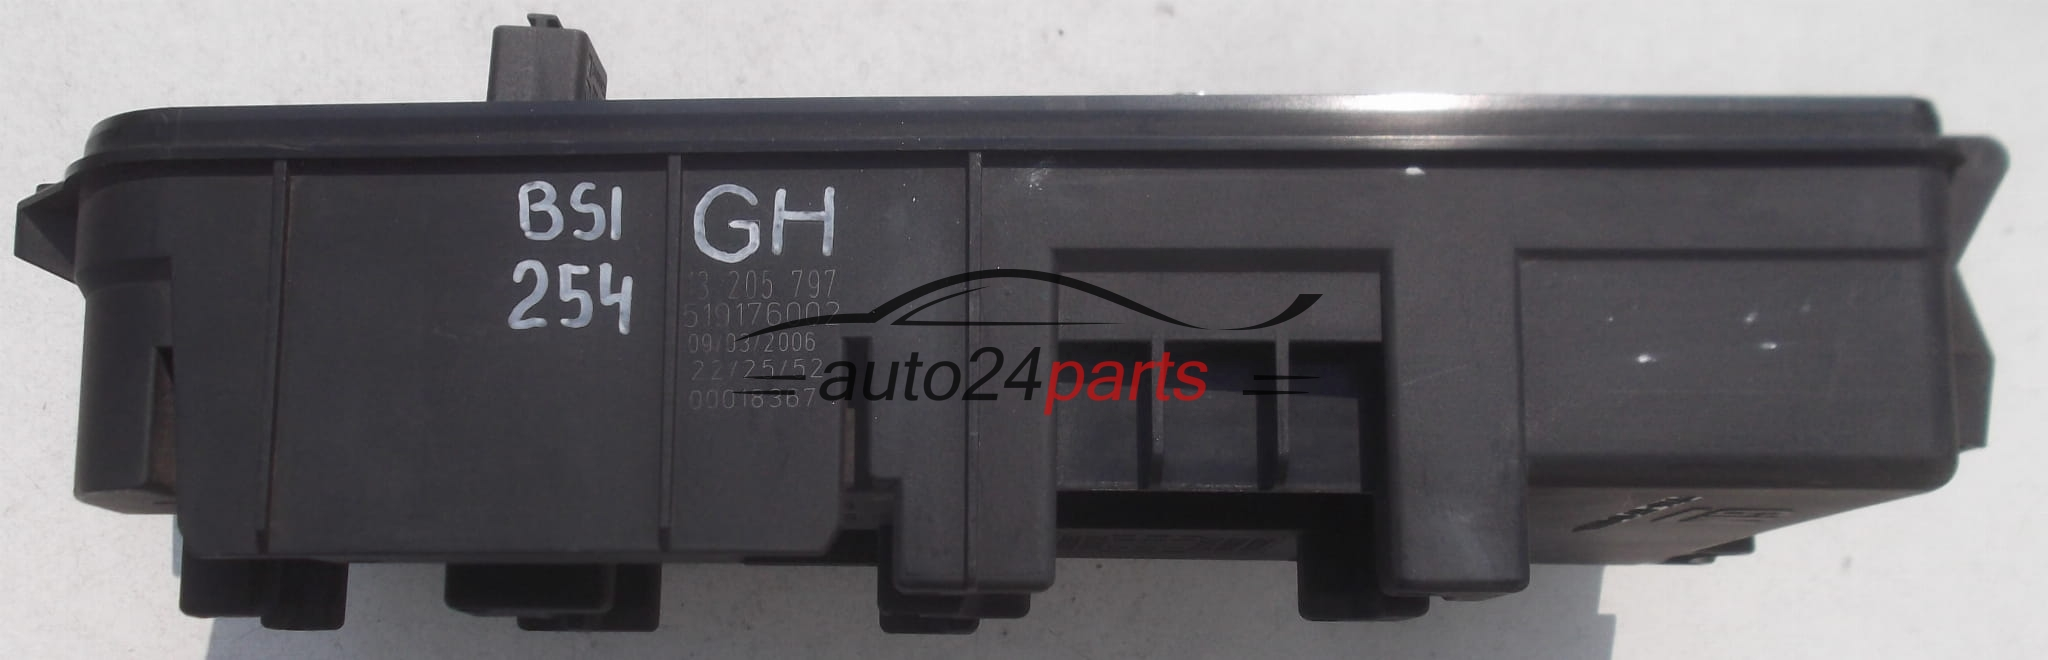 Fuse Relay Box Electrical Comfort Control Module Body Opel Vectra C Automotive And Signum Gm 13 205 797